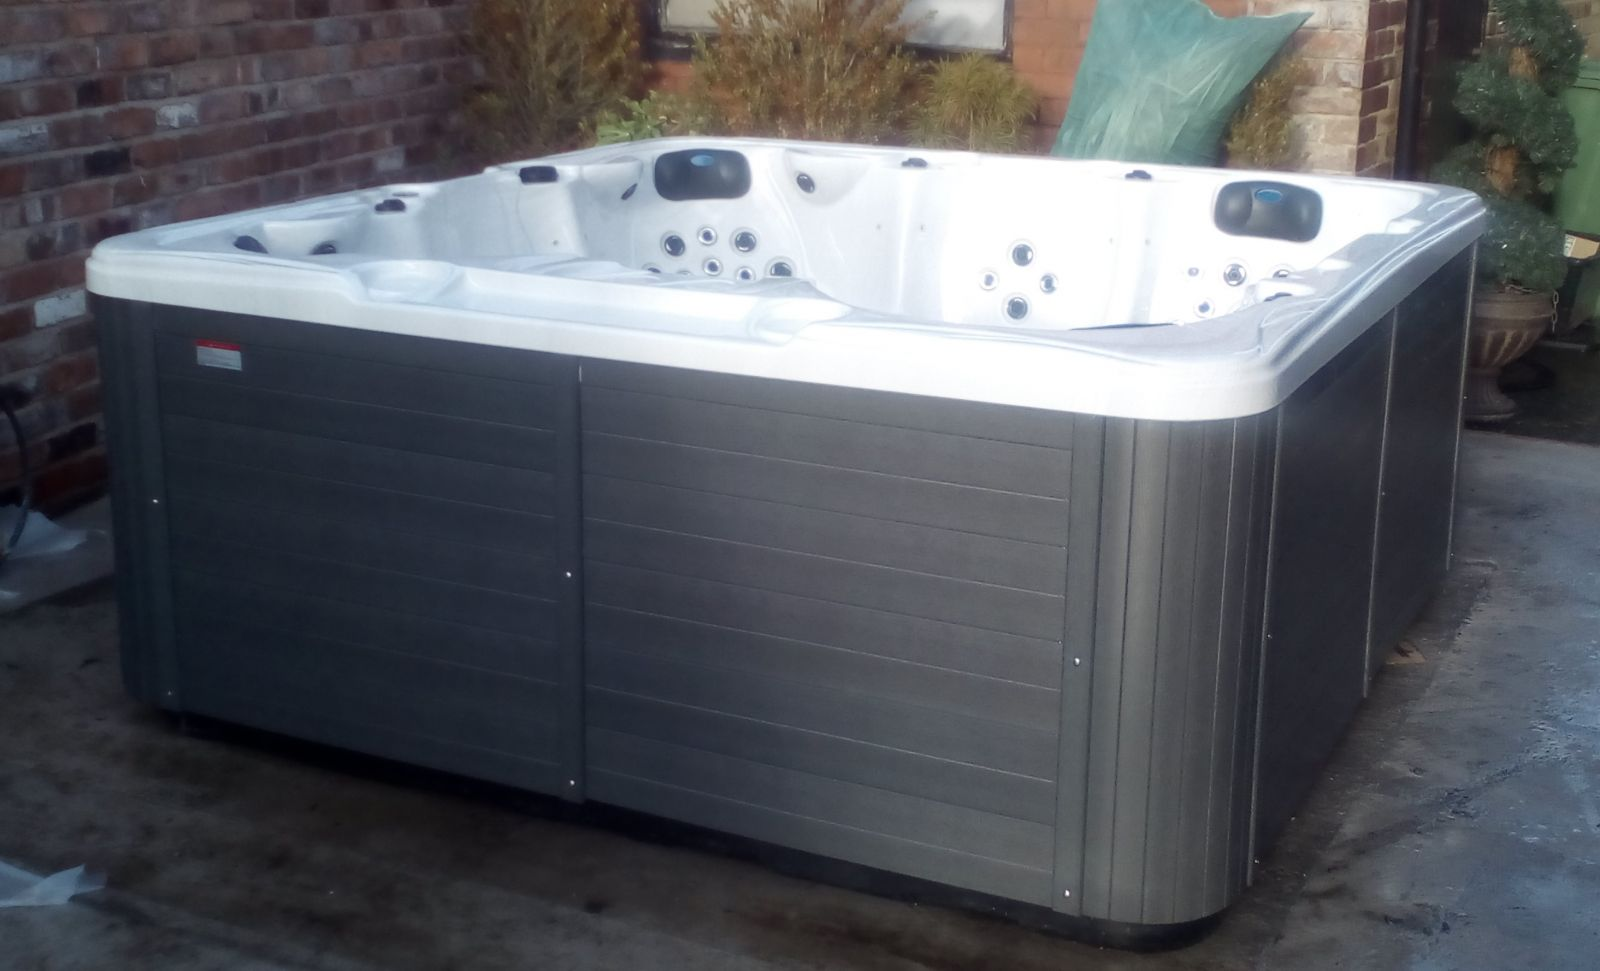 Volta 6 Seat Hot Tub - Mark From Liverpool. ""